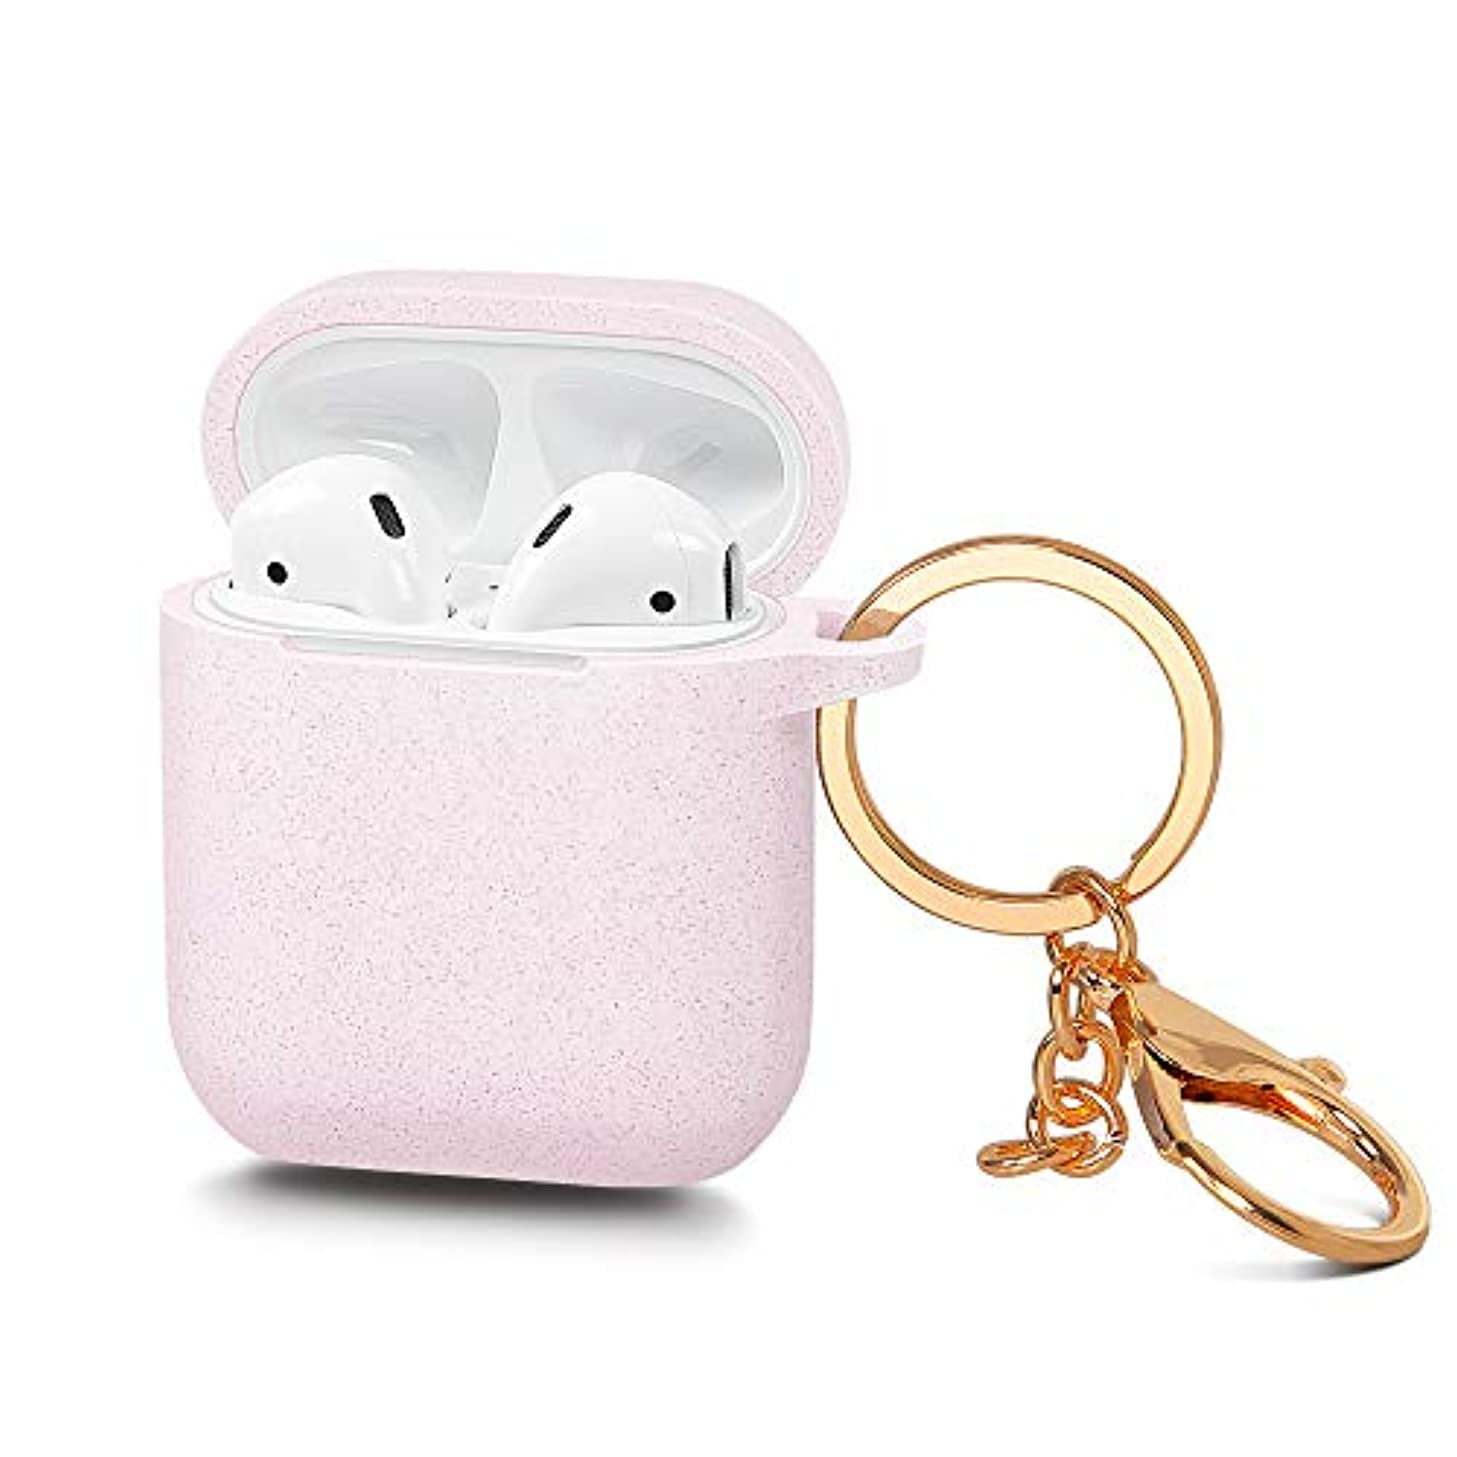 AirSha Compatible for AirPods Case with Keychain, [Front LED Visible]&[Support Wireless Charging],Shockproof Silicone Cover Skin for AirPods Charging Case 2 & 1 (Glitter Pink)